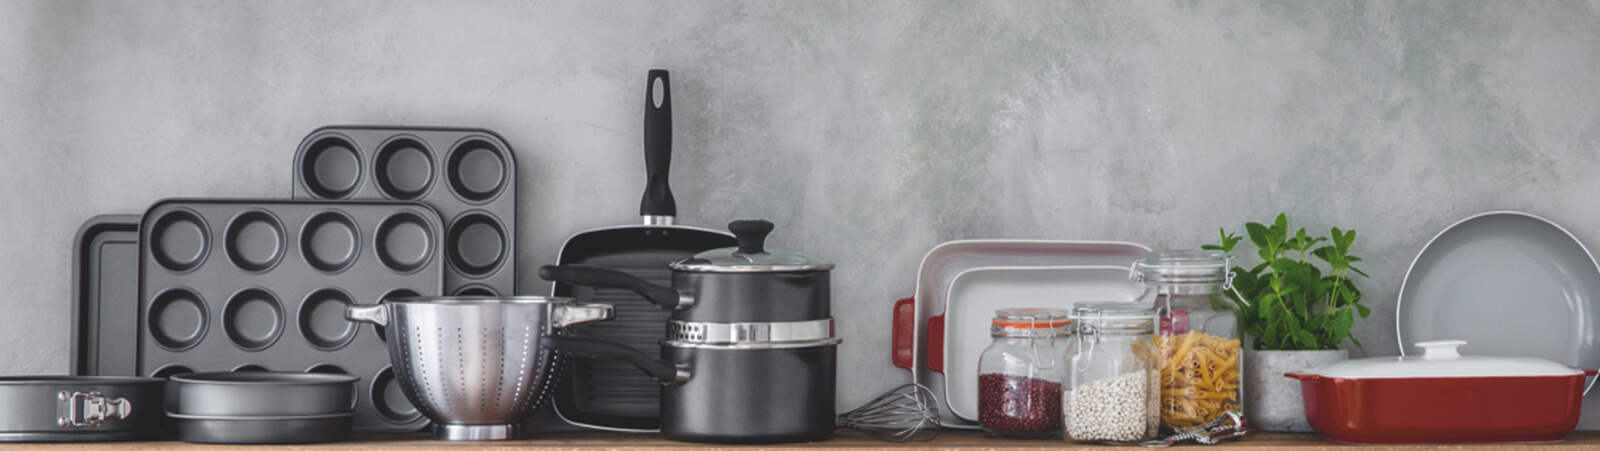 Cooking Dining Tableware Cookware Tesco Groceries